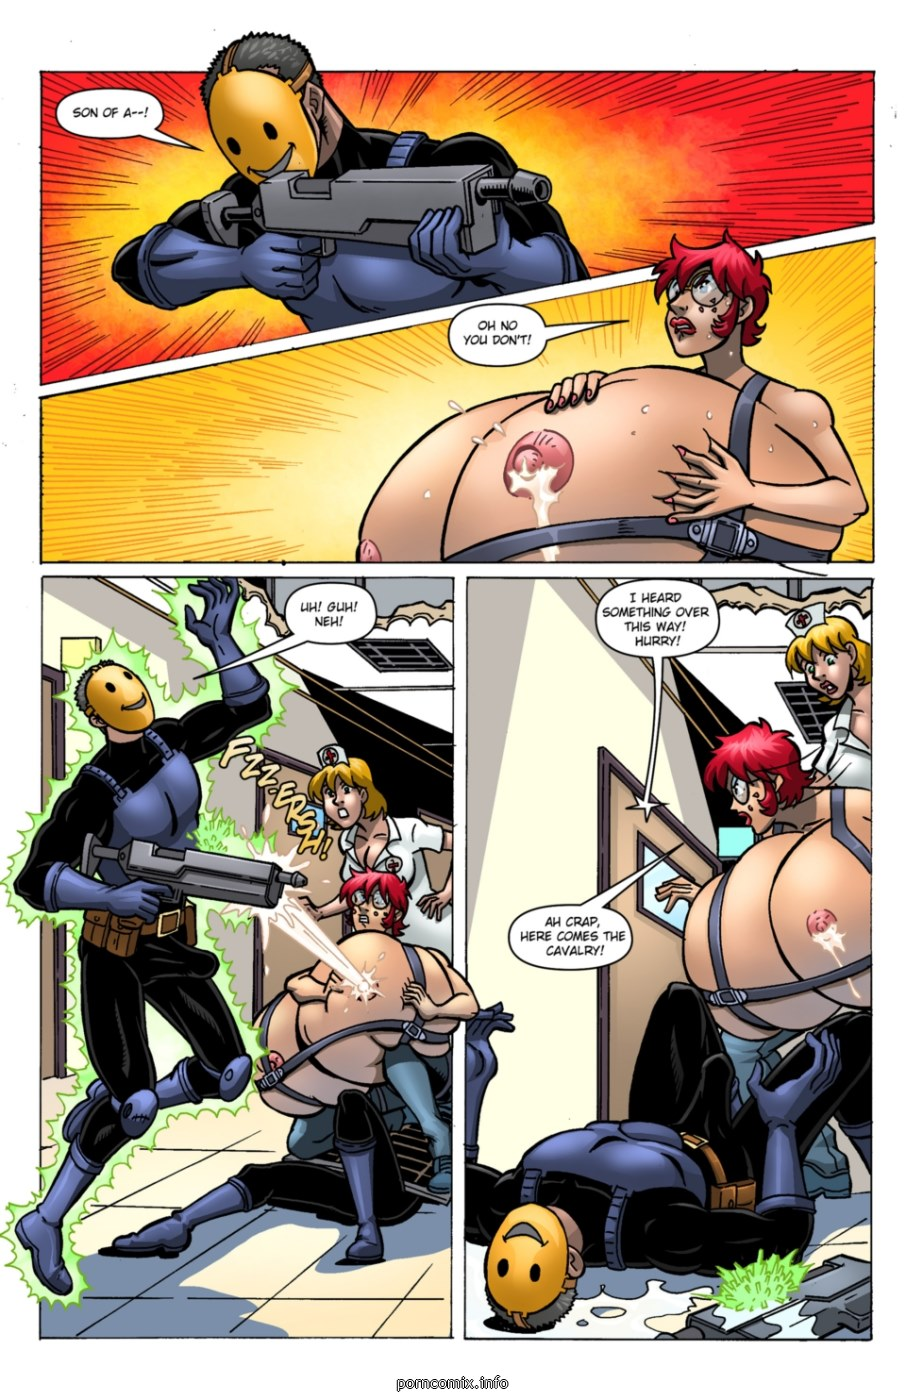 The Cleavage Crusader 6- Expansionfan